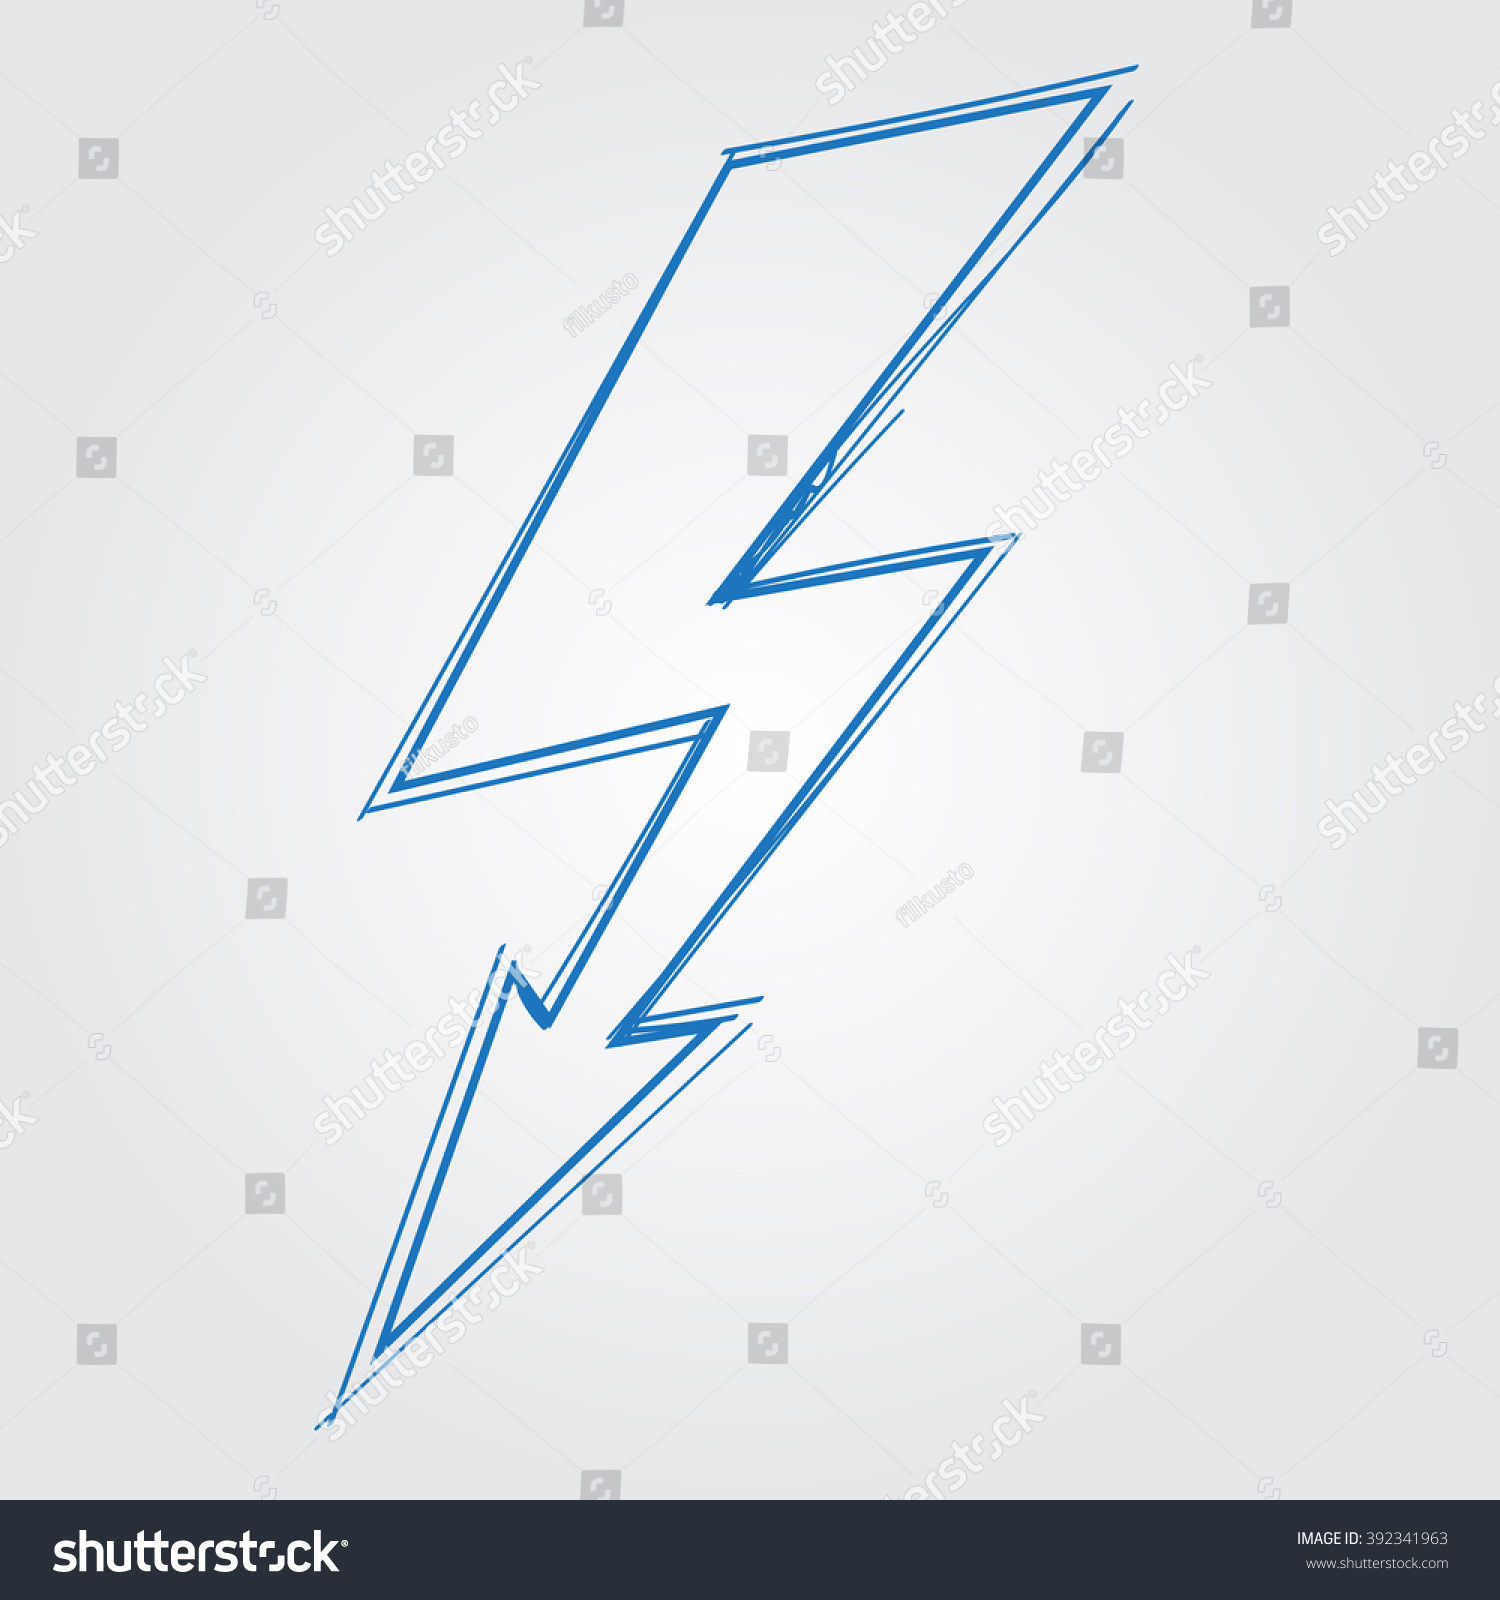 Lightning Electric Charge Logo Outline Drawing Stock Photo Photo